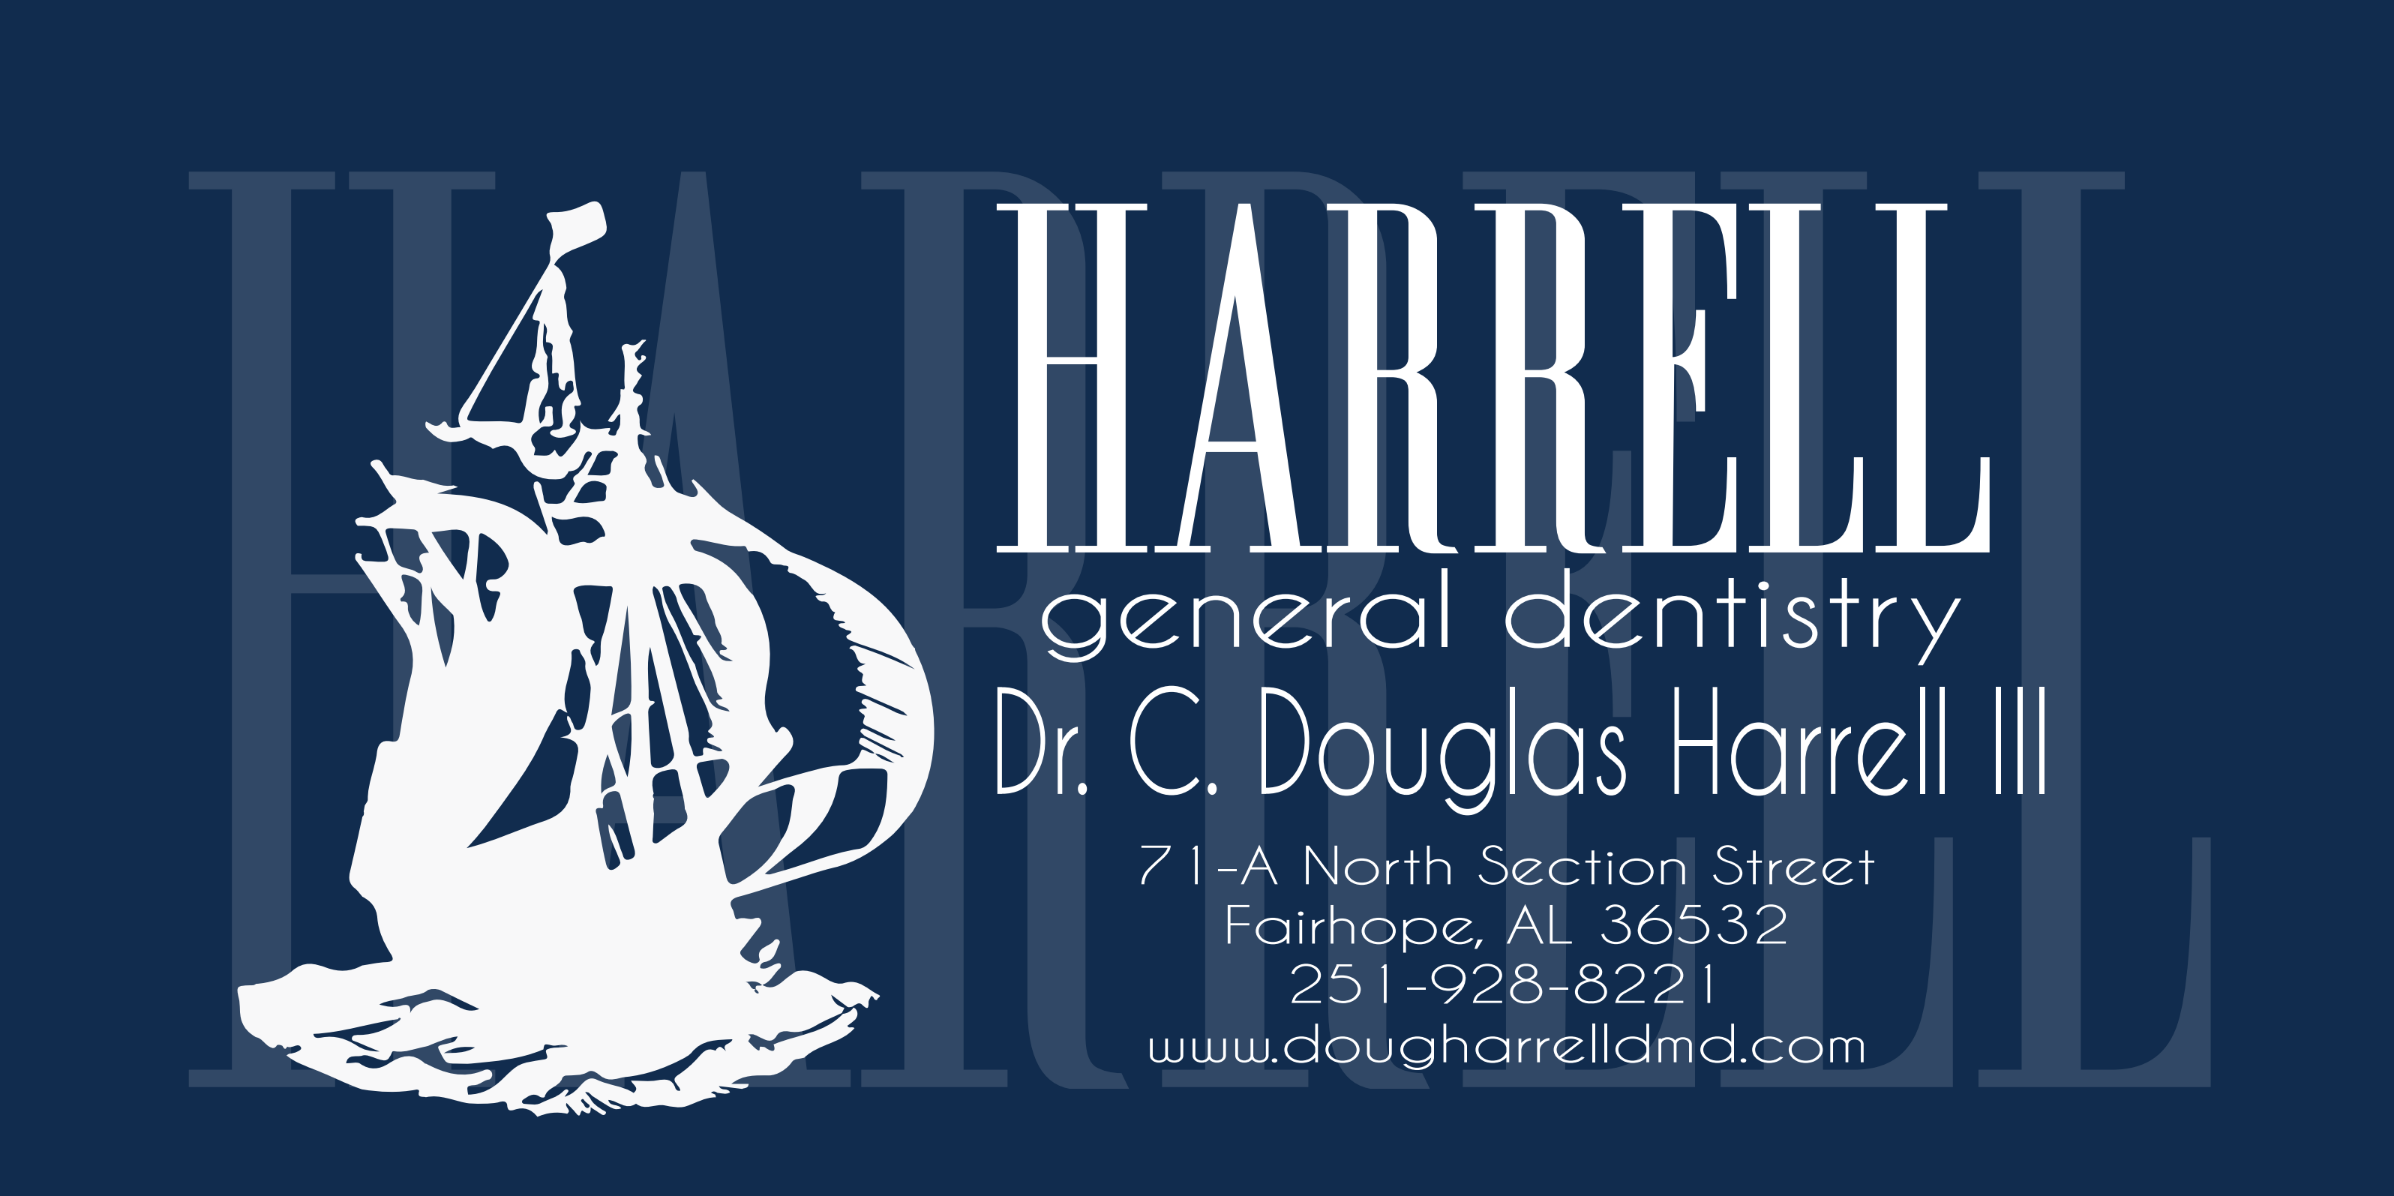 Thank you, Dr. Harrell!